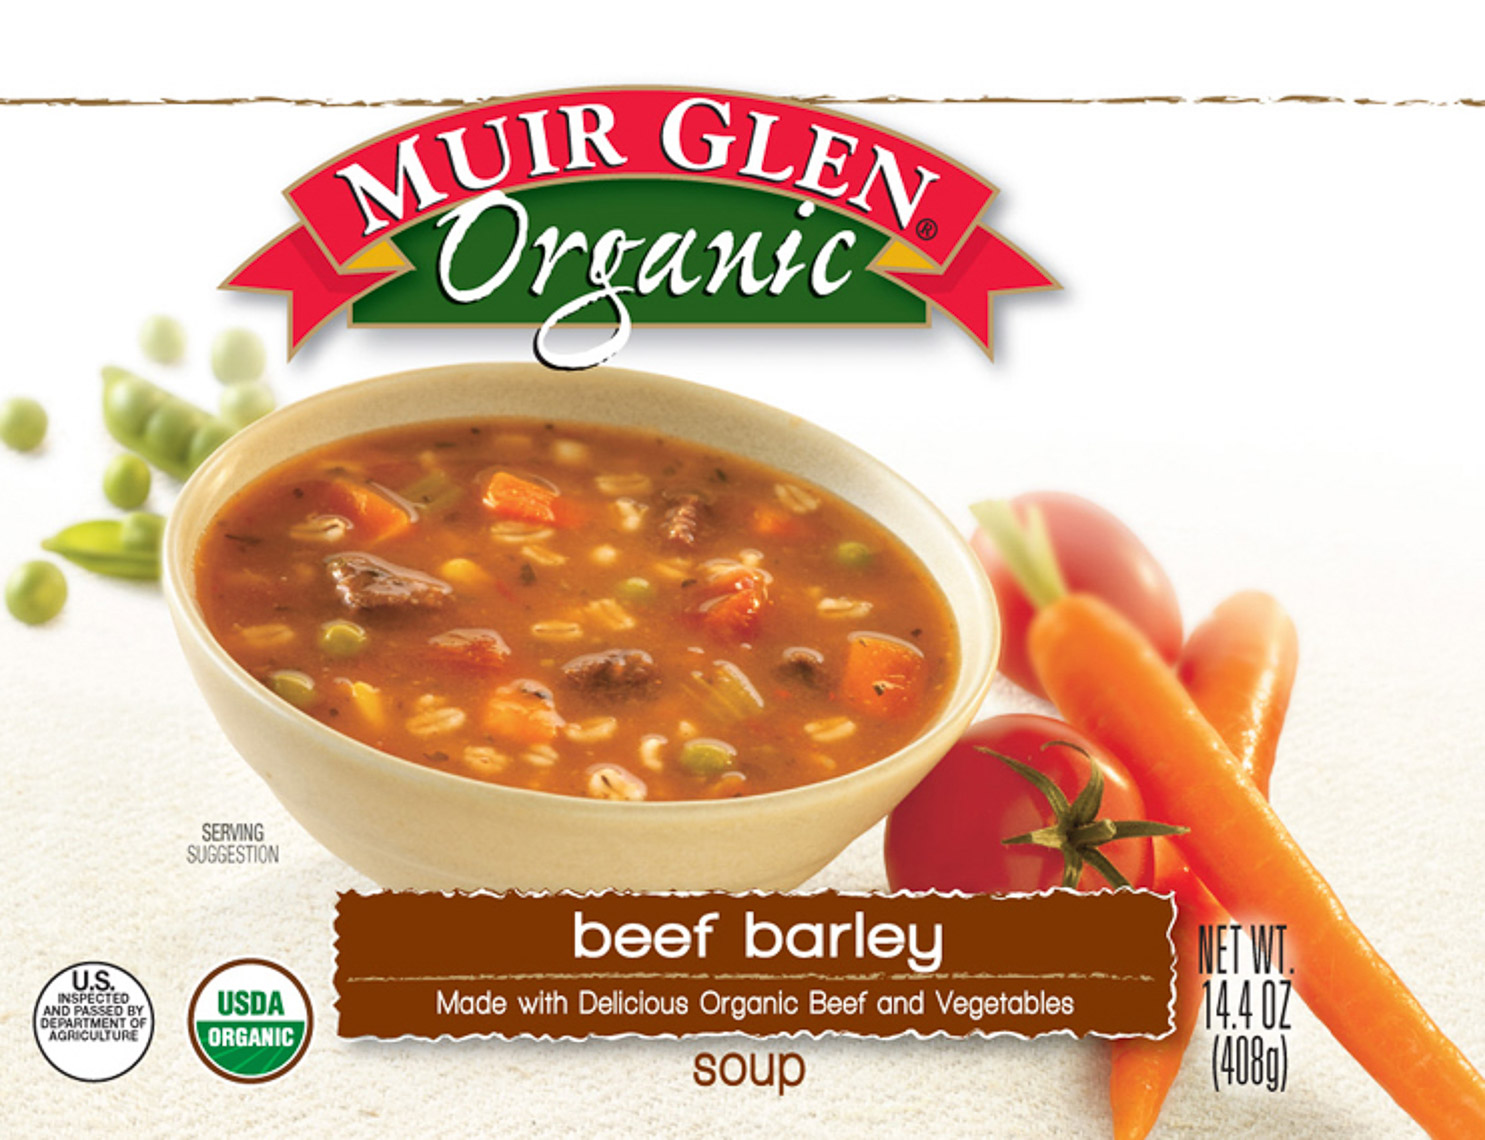 Muir Glen Organic Food Packaging Photography